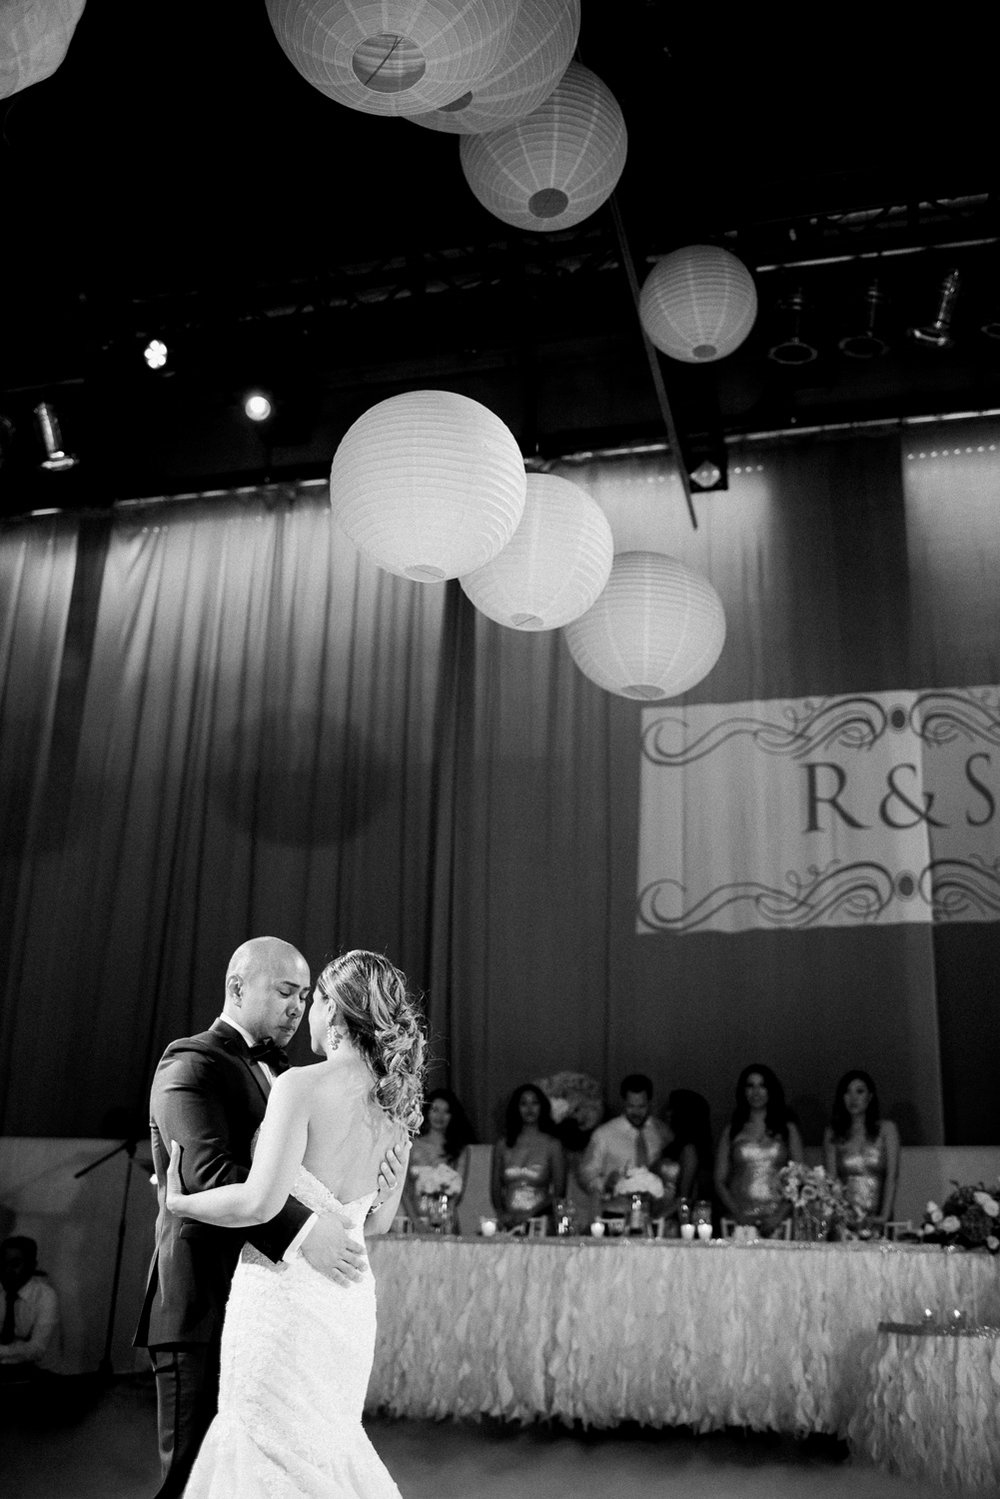 sherry_richard_liberty_grand_toronto_wedding-43.jpg